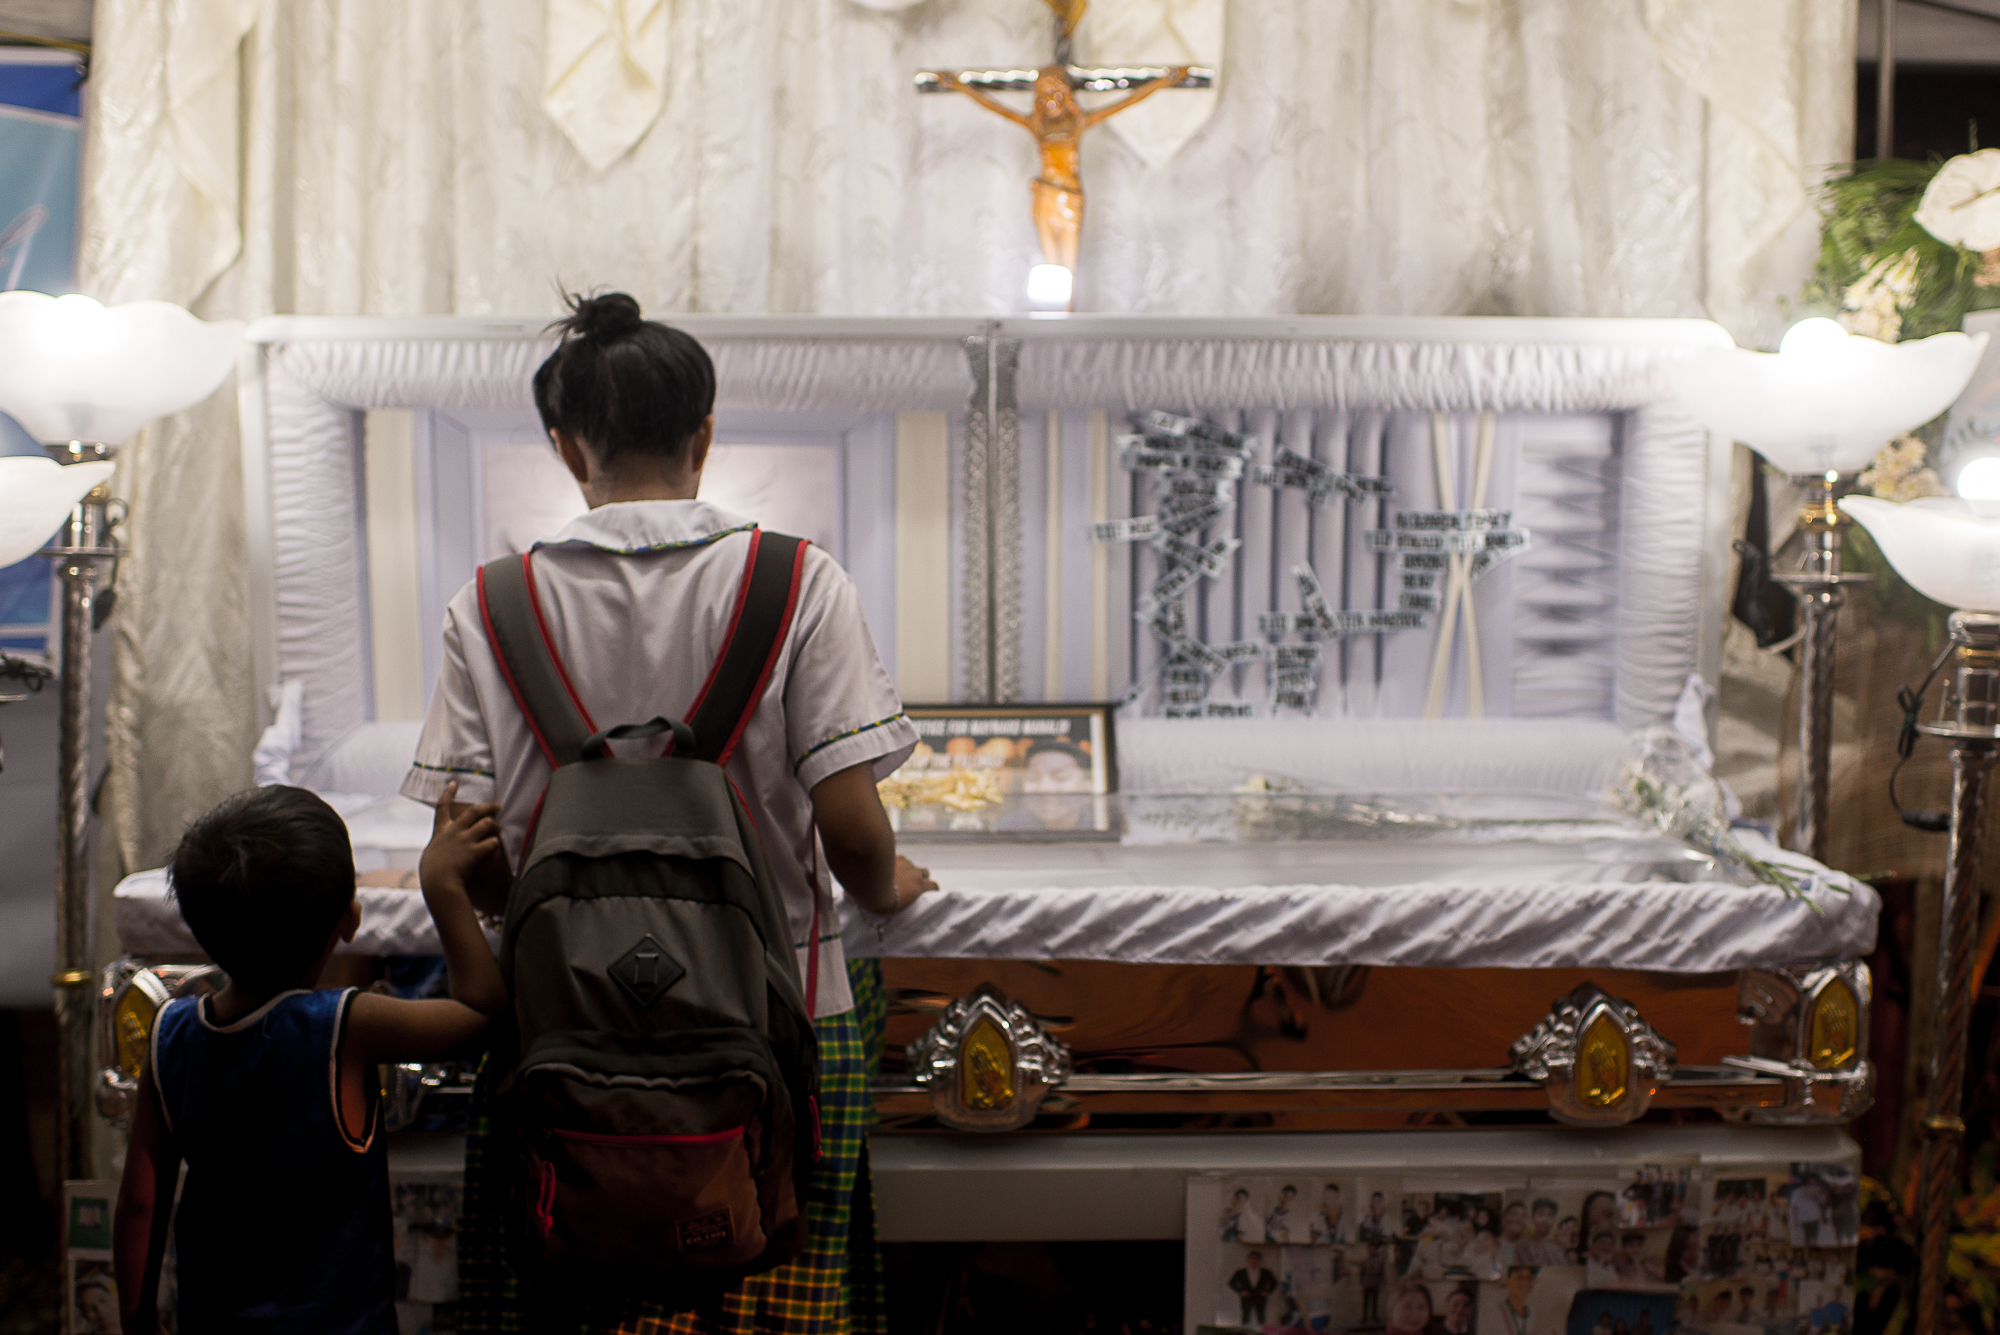 WELL-LOVED. Classmates, neighbors, and relatives attest to the good behavior of the 17-year-old Maynard, who was killed by known robbers and carnappers in Makati on November 14, 2017. Photo by Eloisa Lopez/Rappler